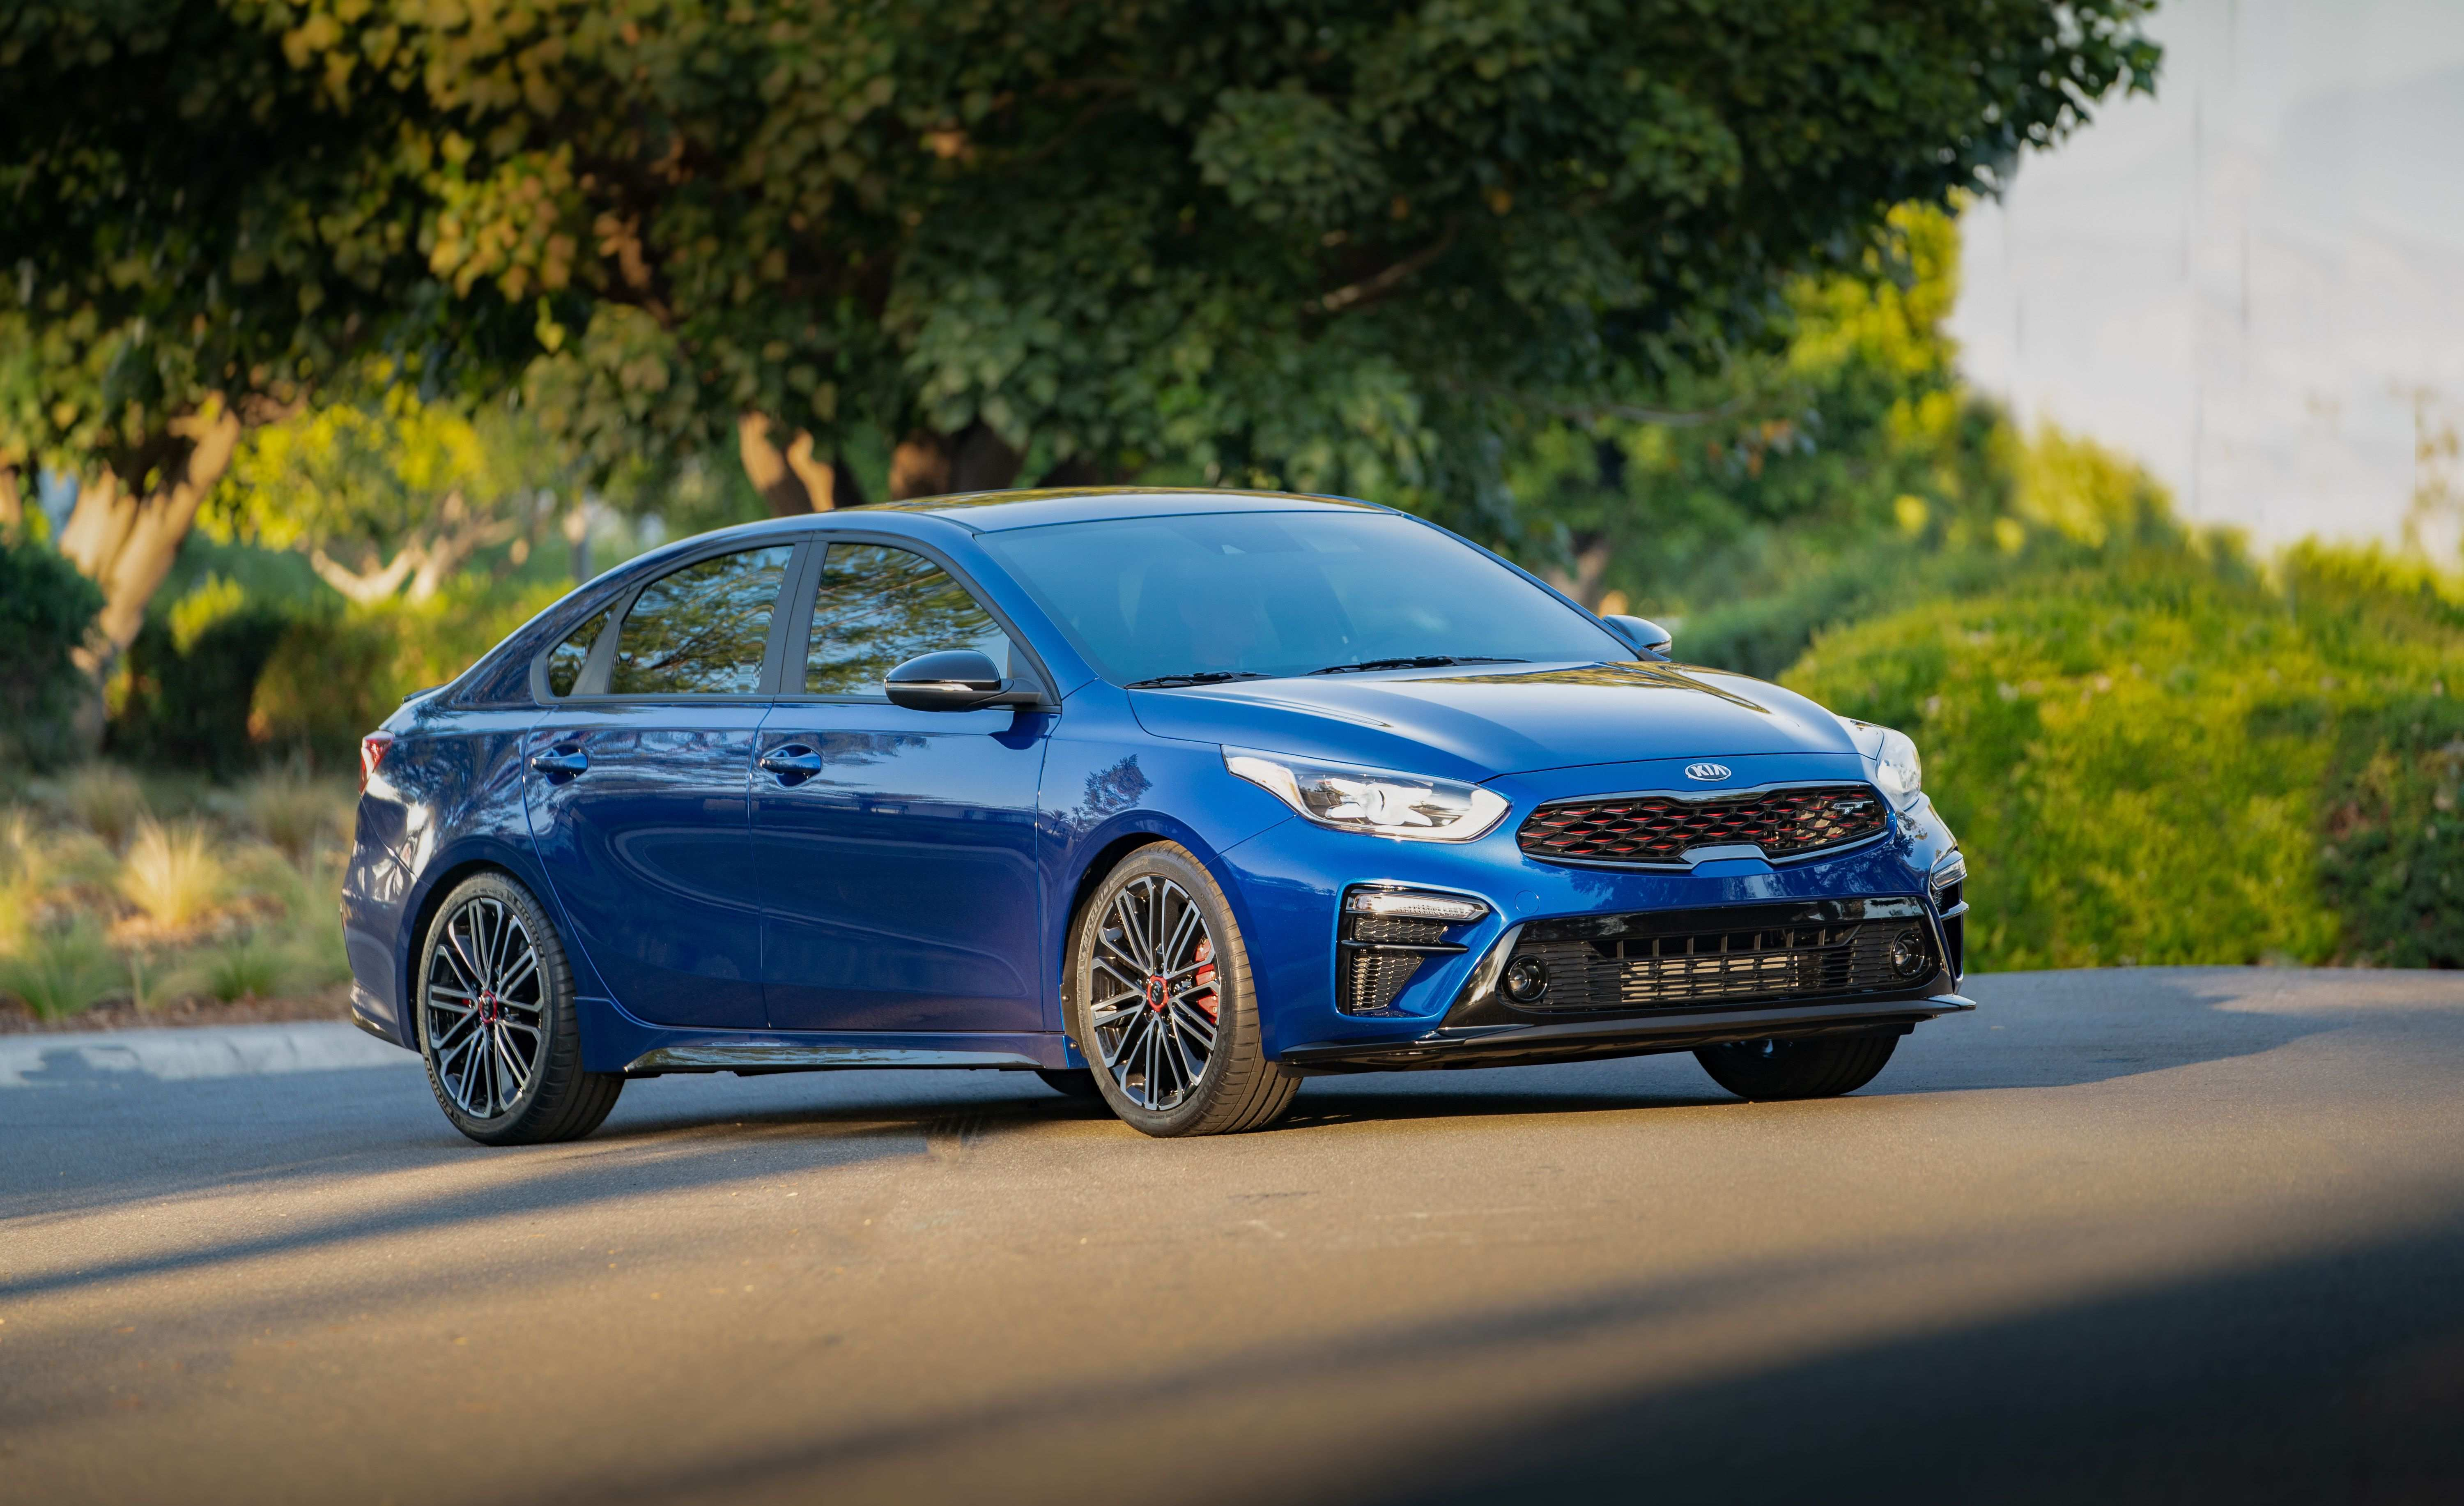 37 All New Kia Forte Gt 2020 New Review for Kia Forte Gt 2020